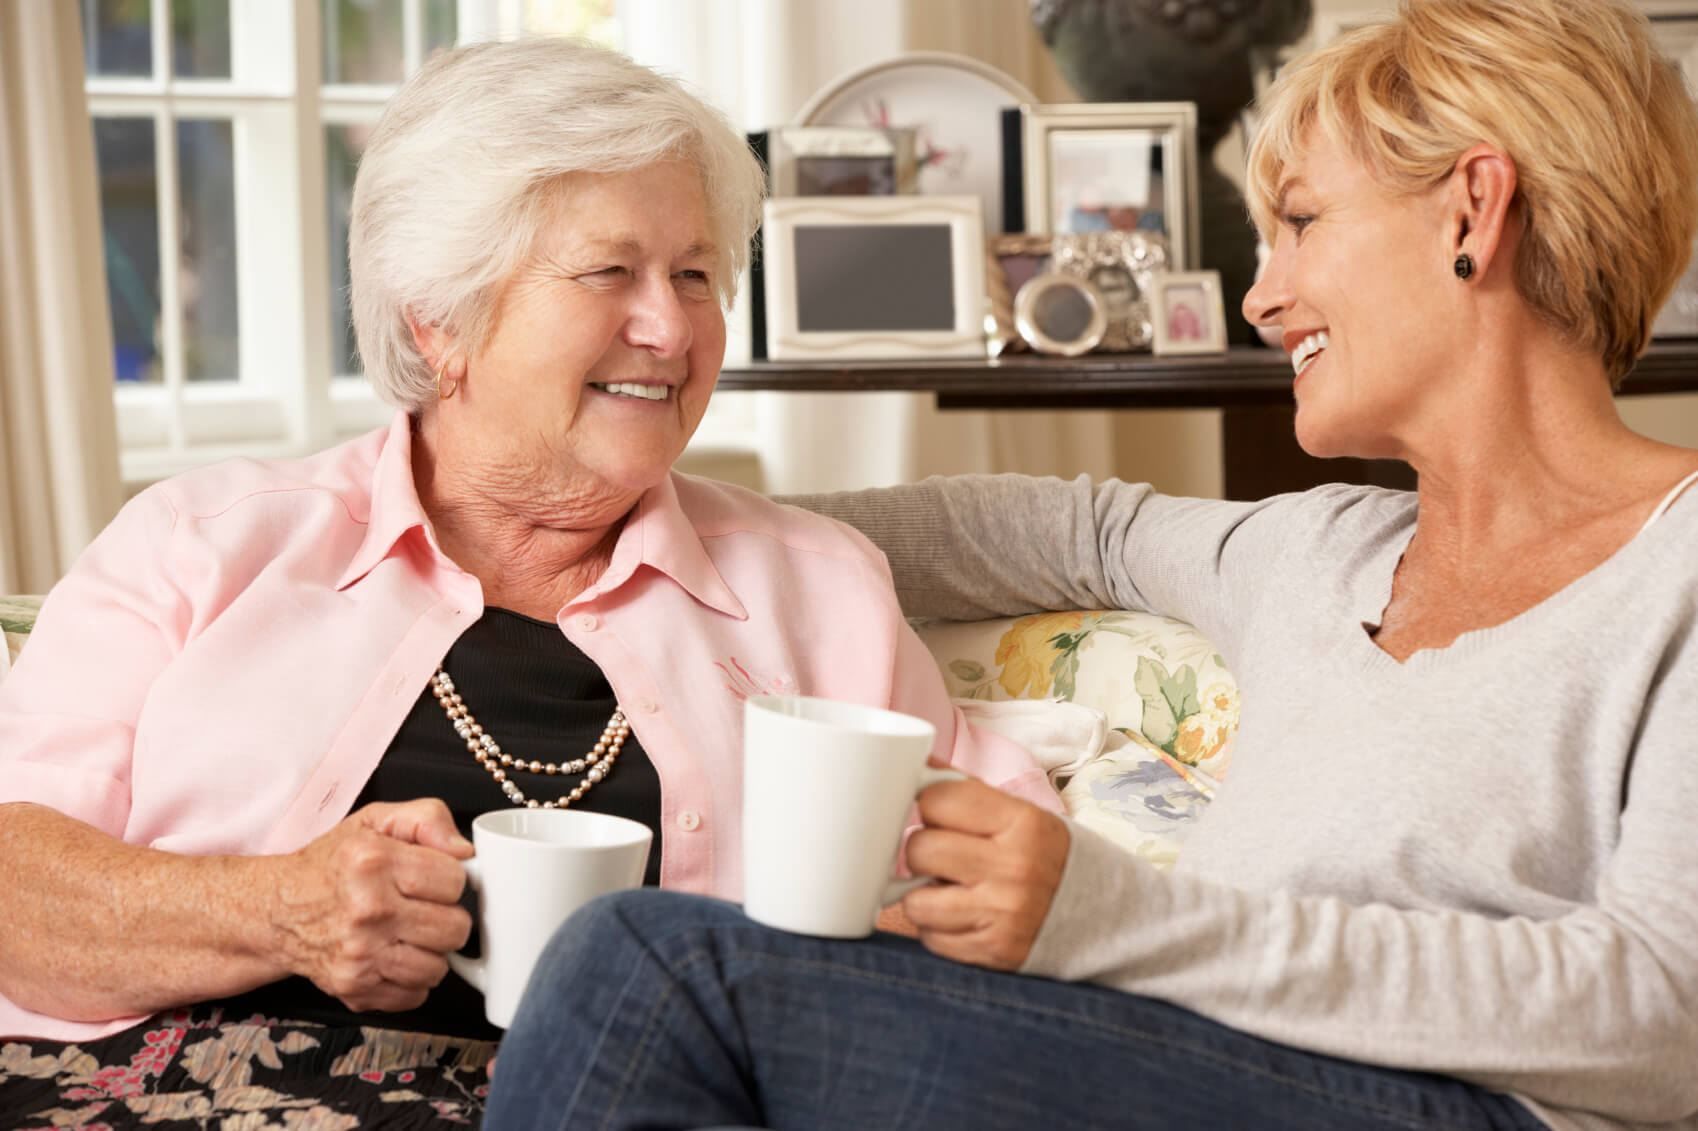 After respite care services, mom and daughter are enjoying tea together.